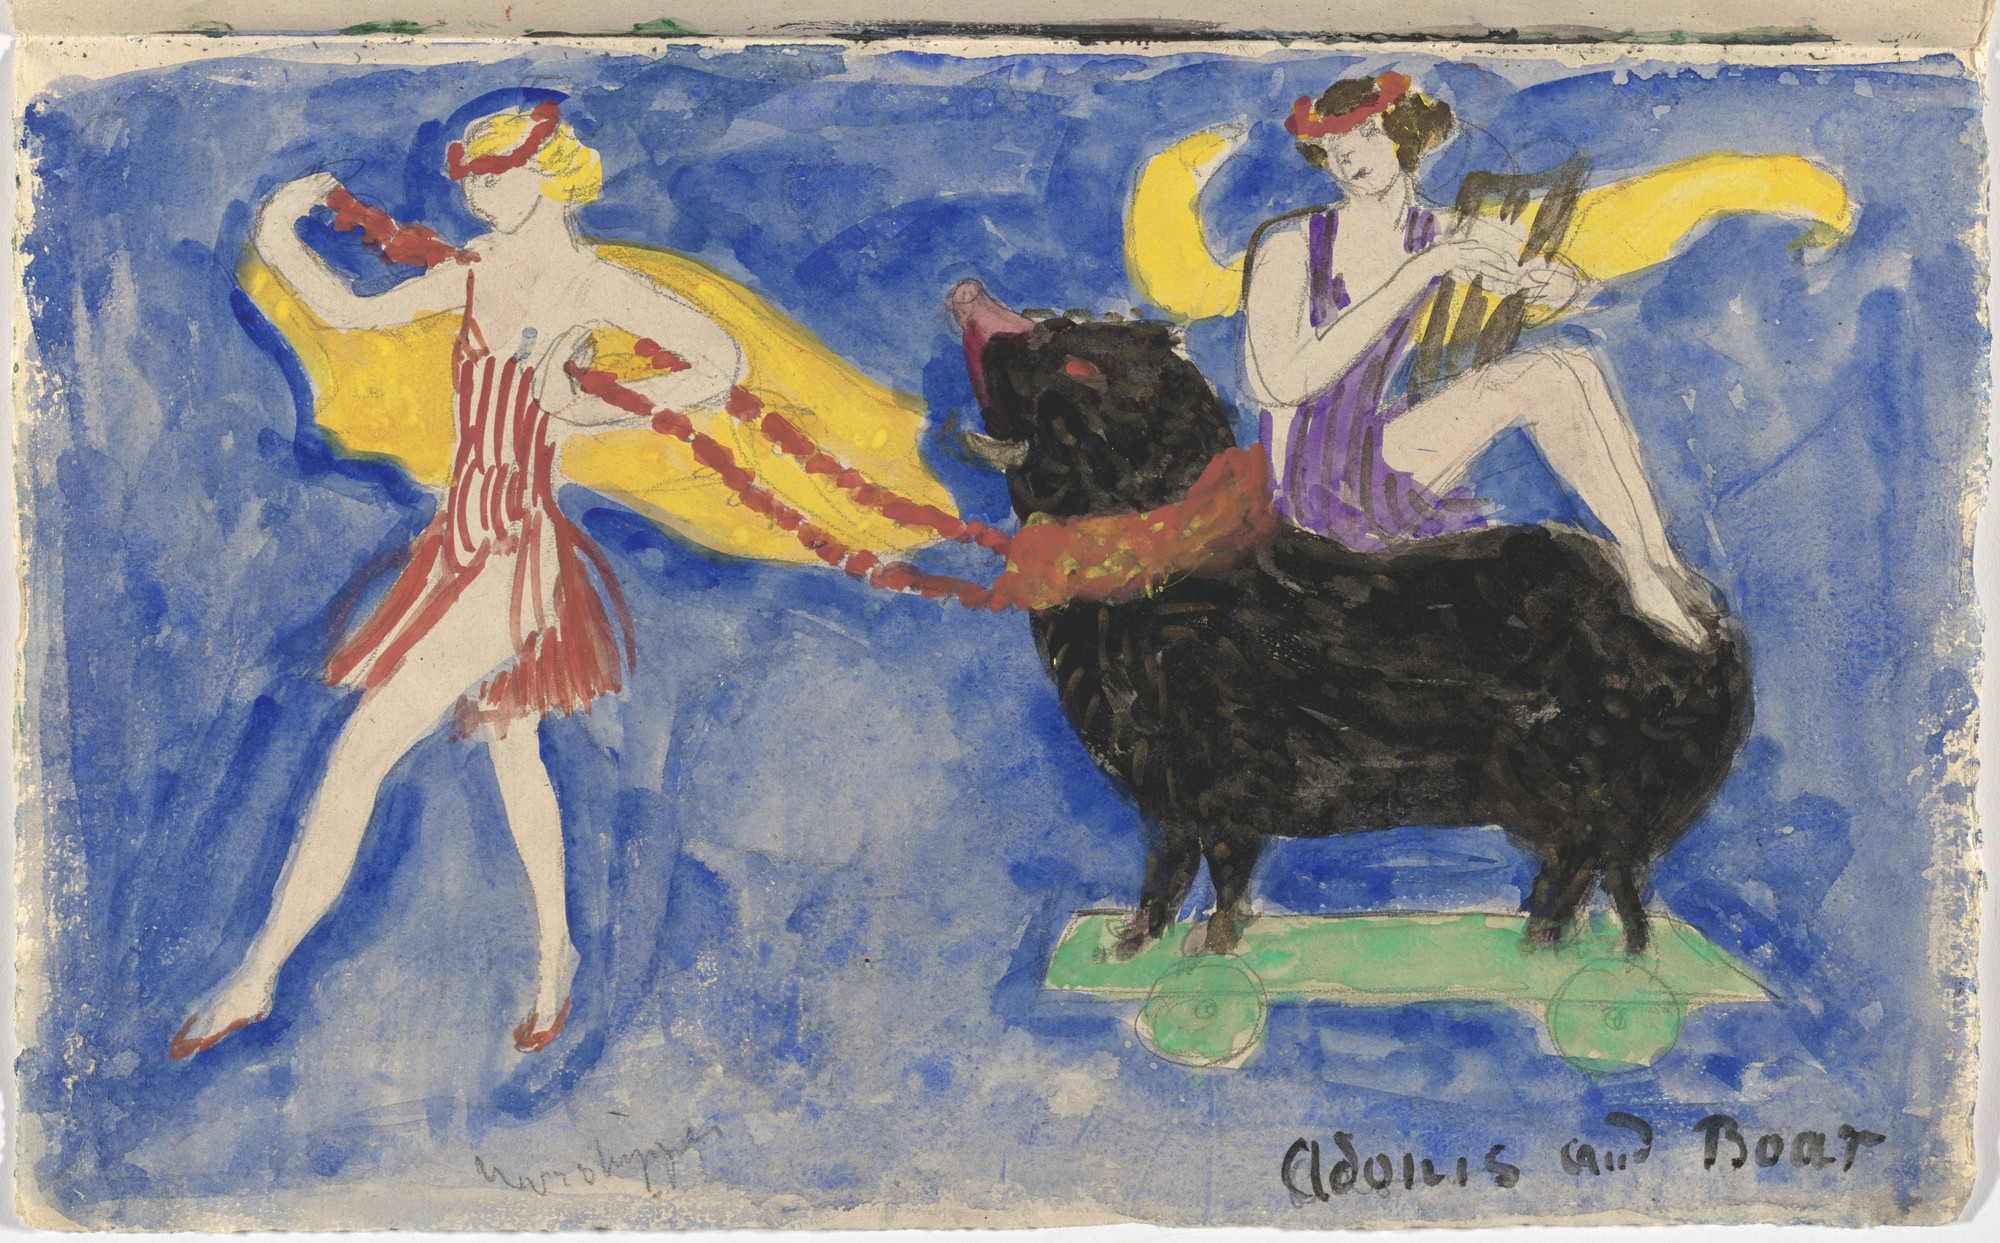 Florine Stettheimer. Costume design (Adonis and Boar) for artist's ballet Orphée of the Quat-z-arts. c. 1912